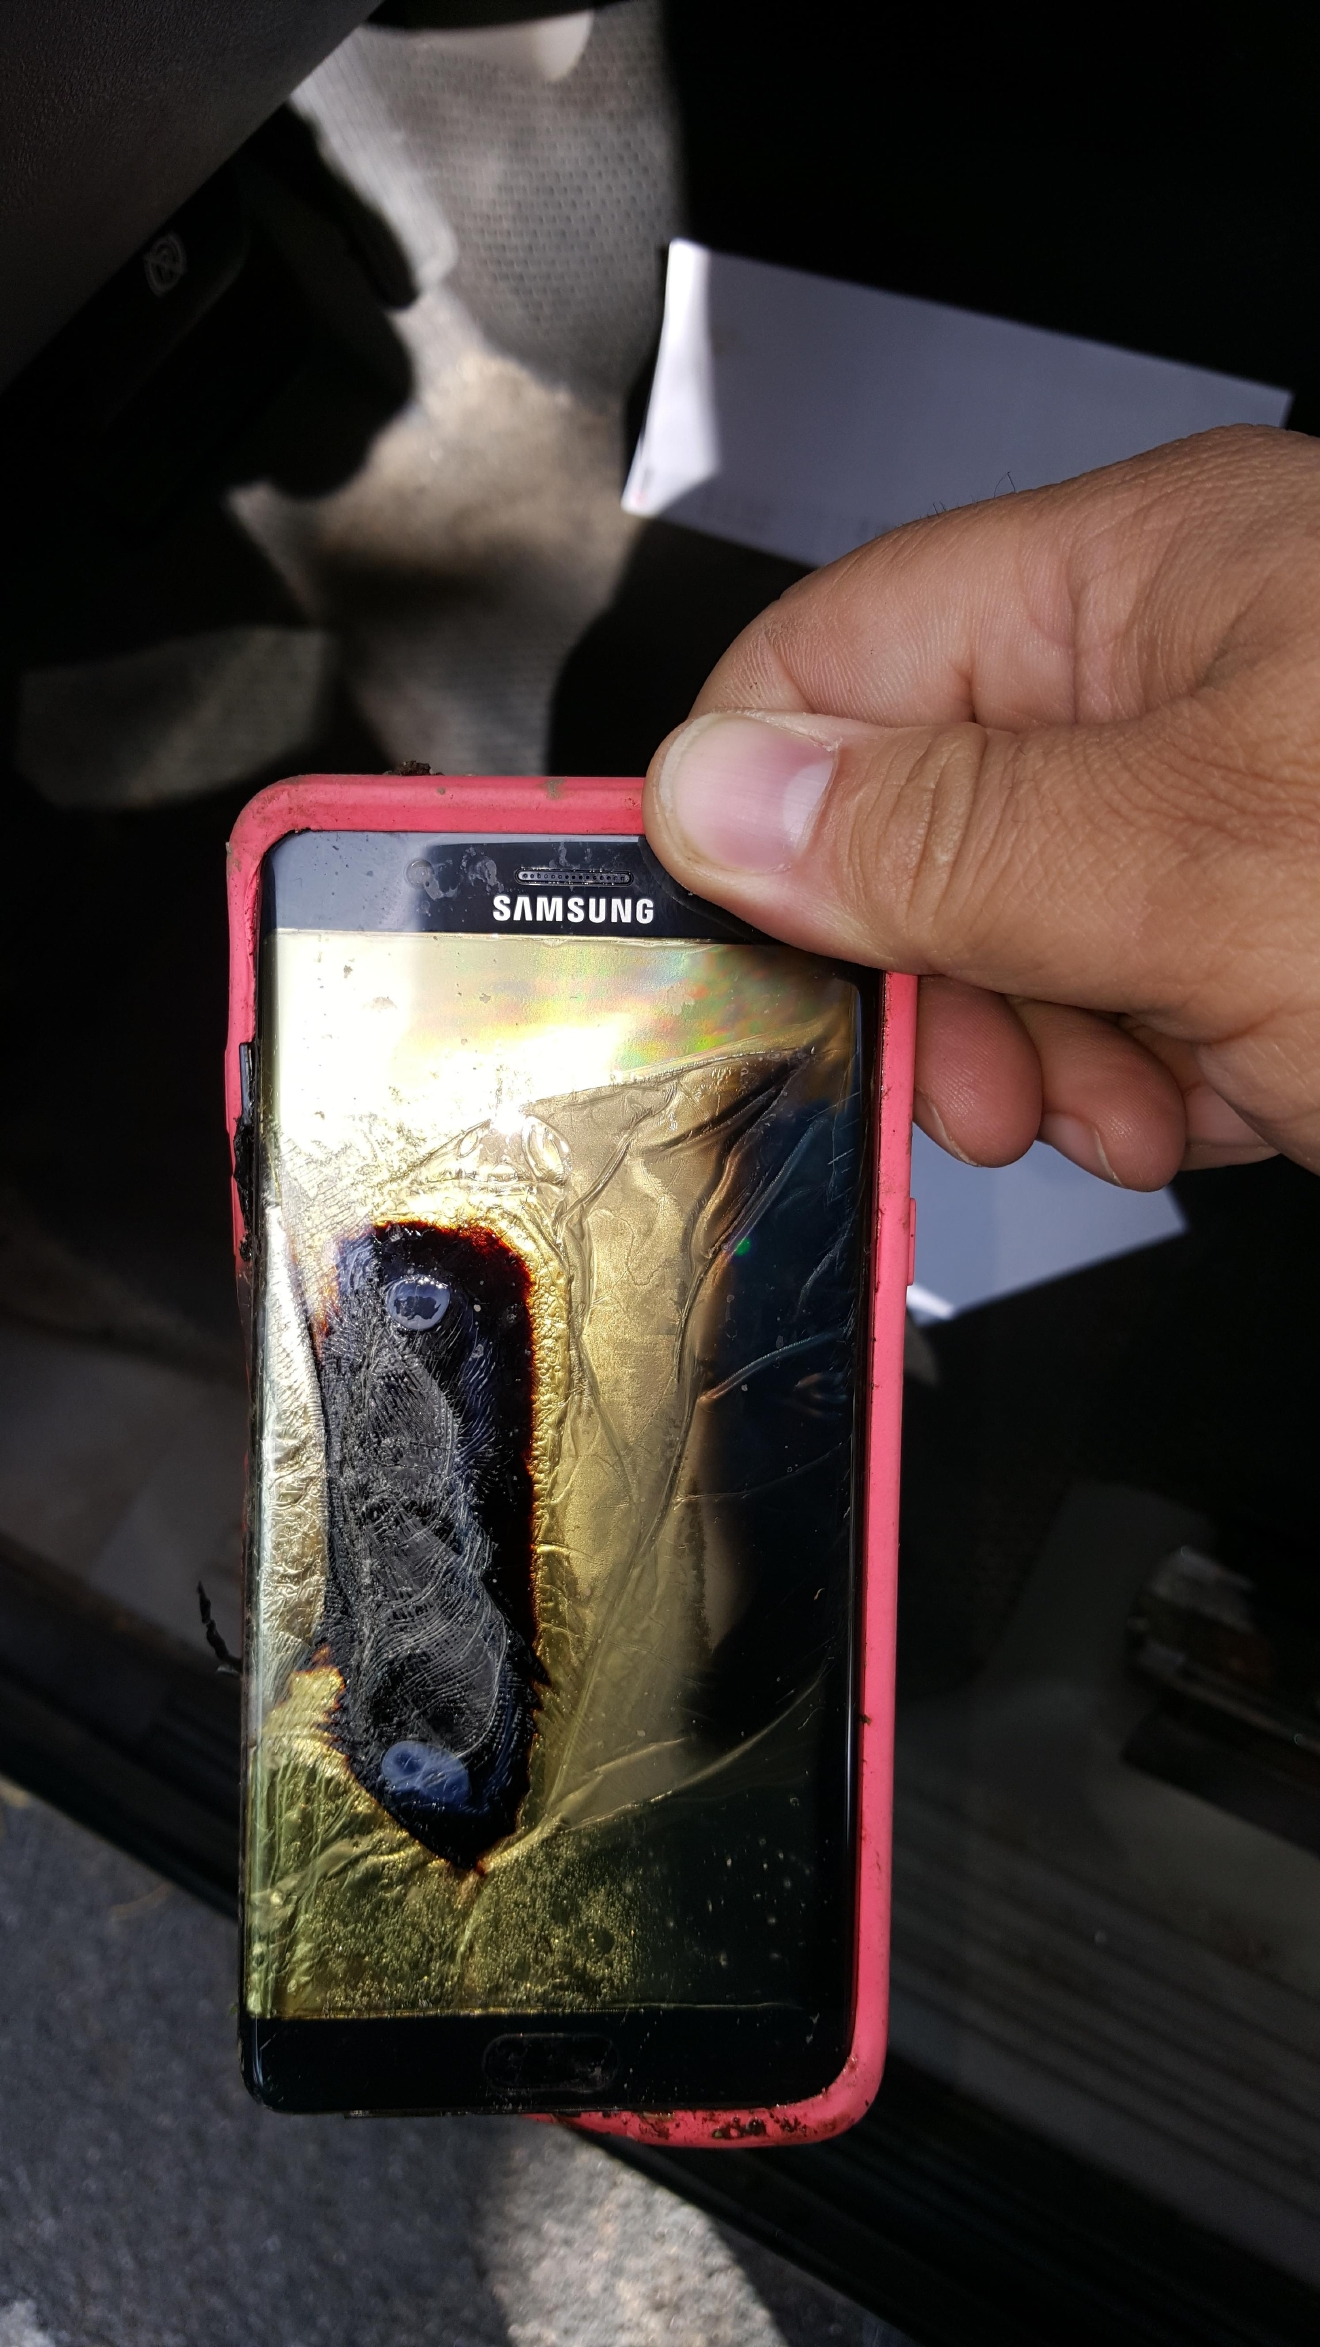 This Friday, Oct. 7, 2016, photo provided by Andrew Zuis, of Farmington, Minn., shows the replacement Samsung Galaxy Note 7 phone belonging to his 13-year-old daughter Abby, that melted in her hand earlier in the day. (Andrew Zuis via AP)